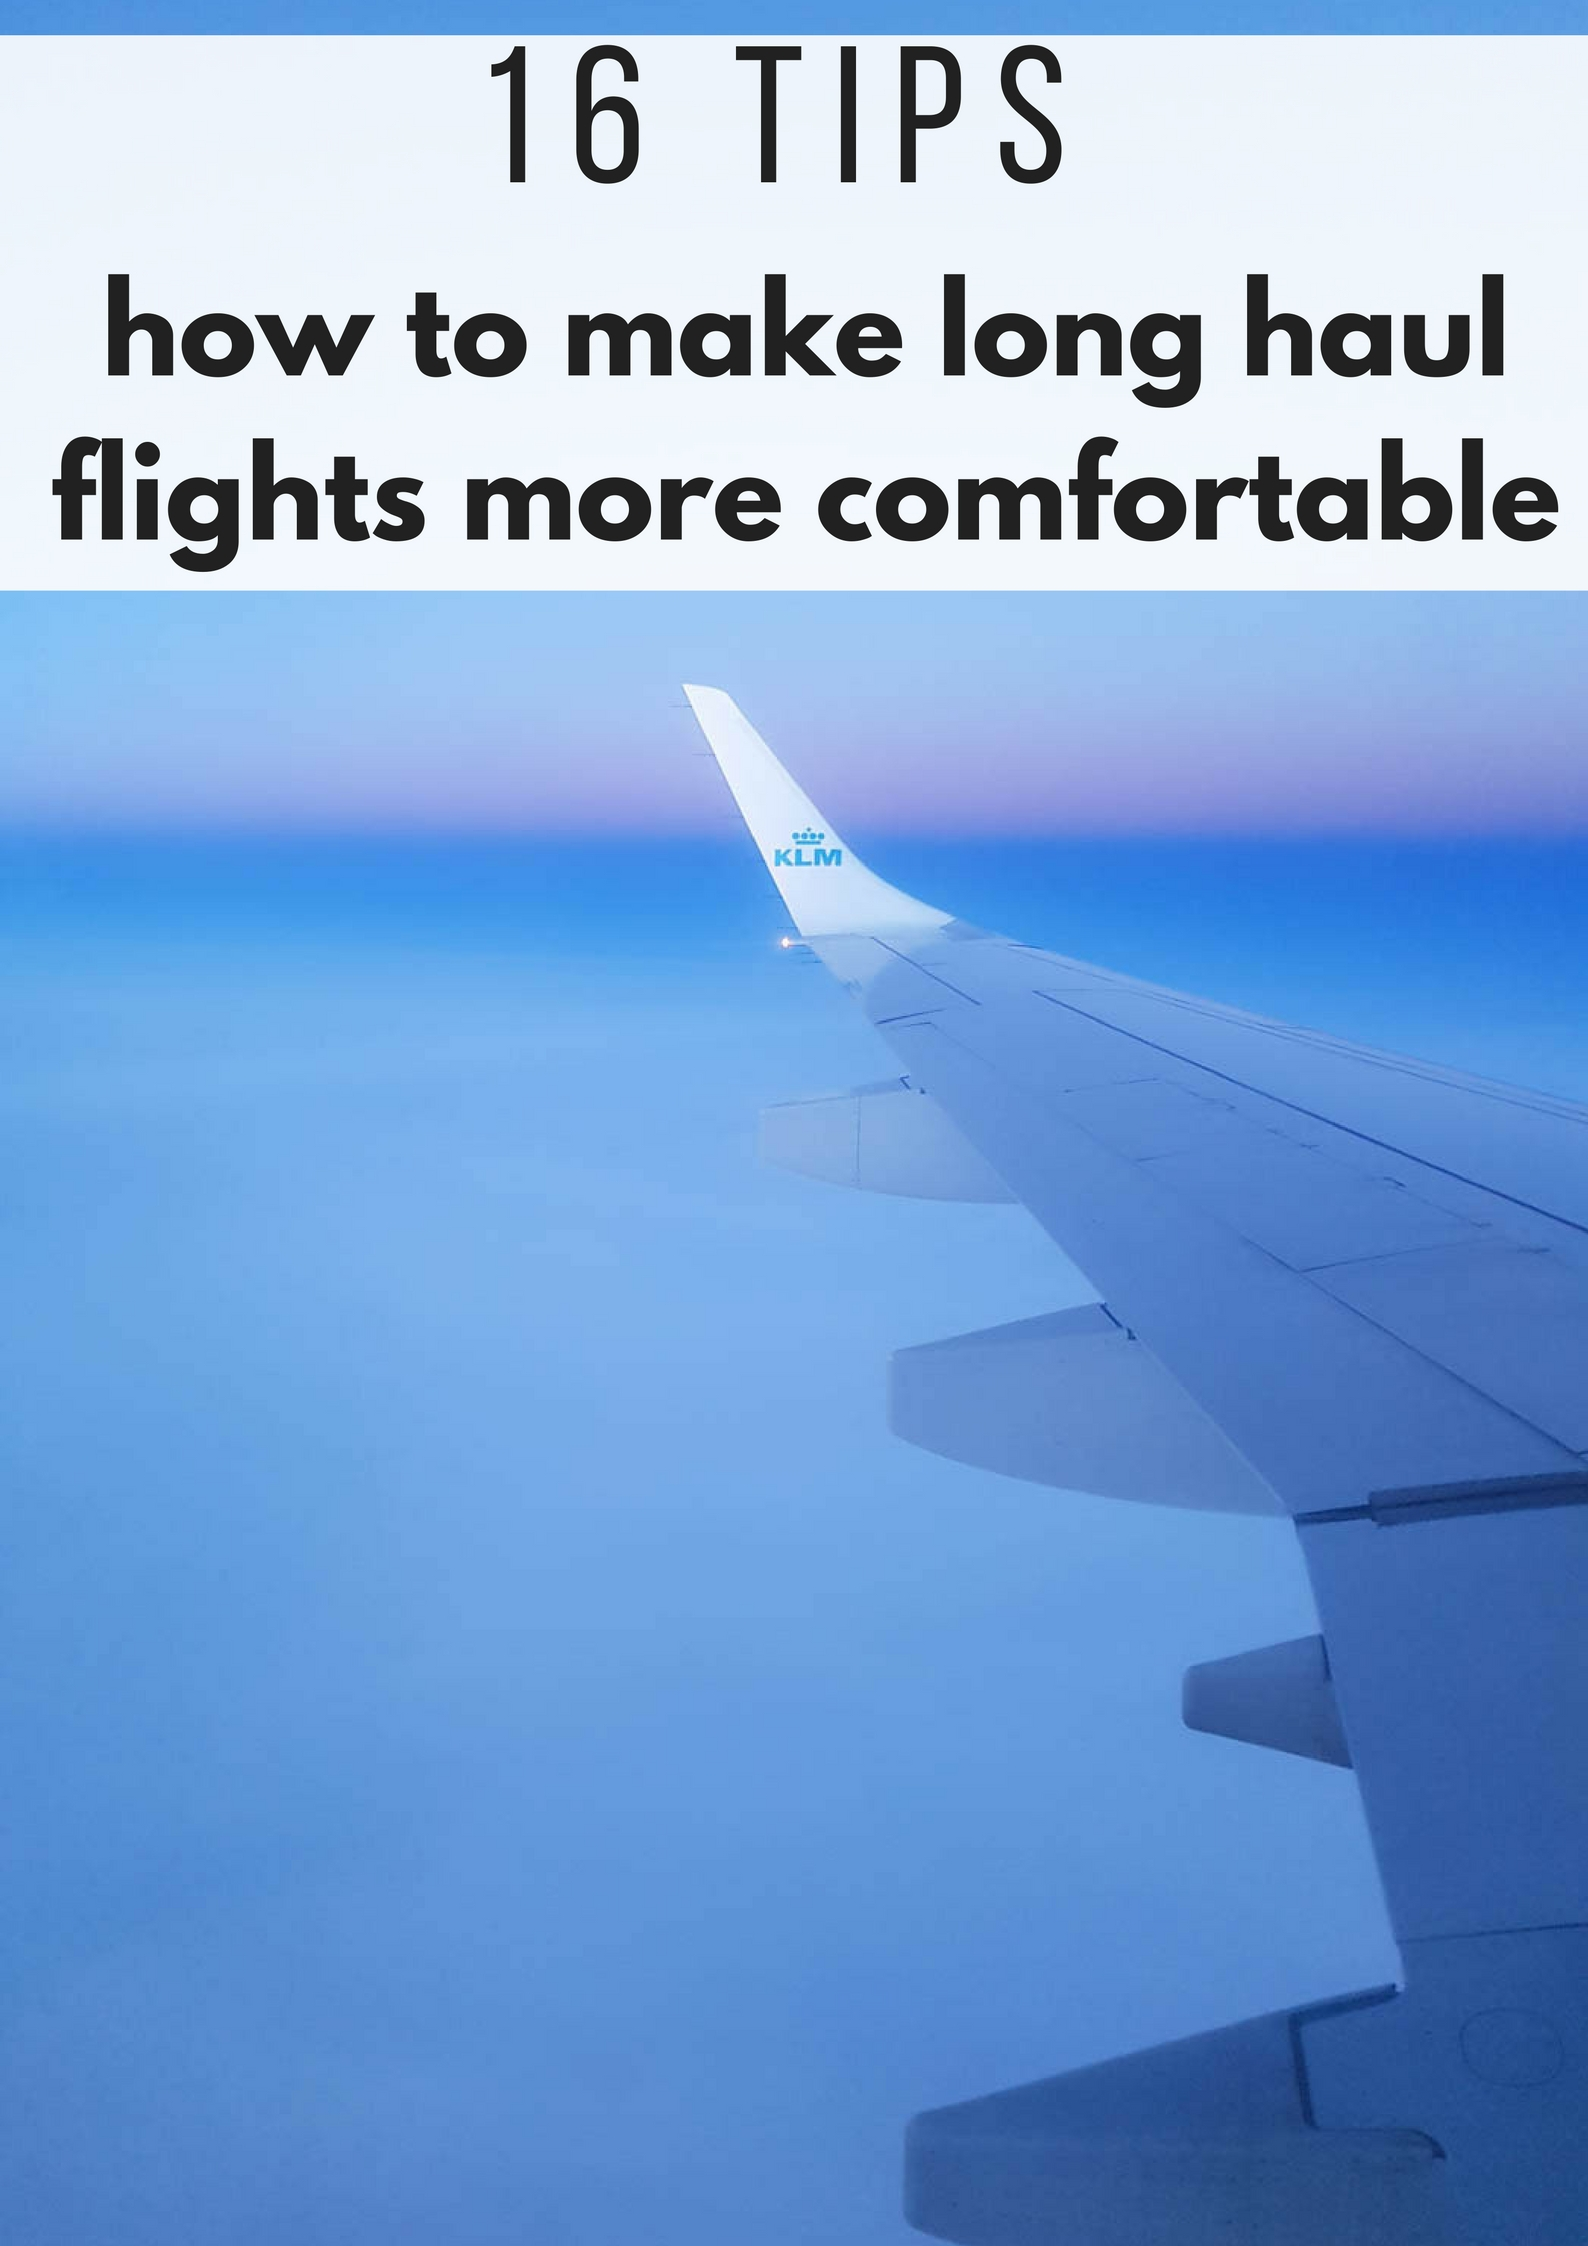 16 tips how to make long haul flights more comfortable - Map of Joy